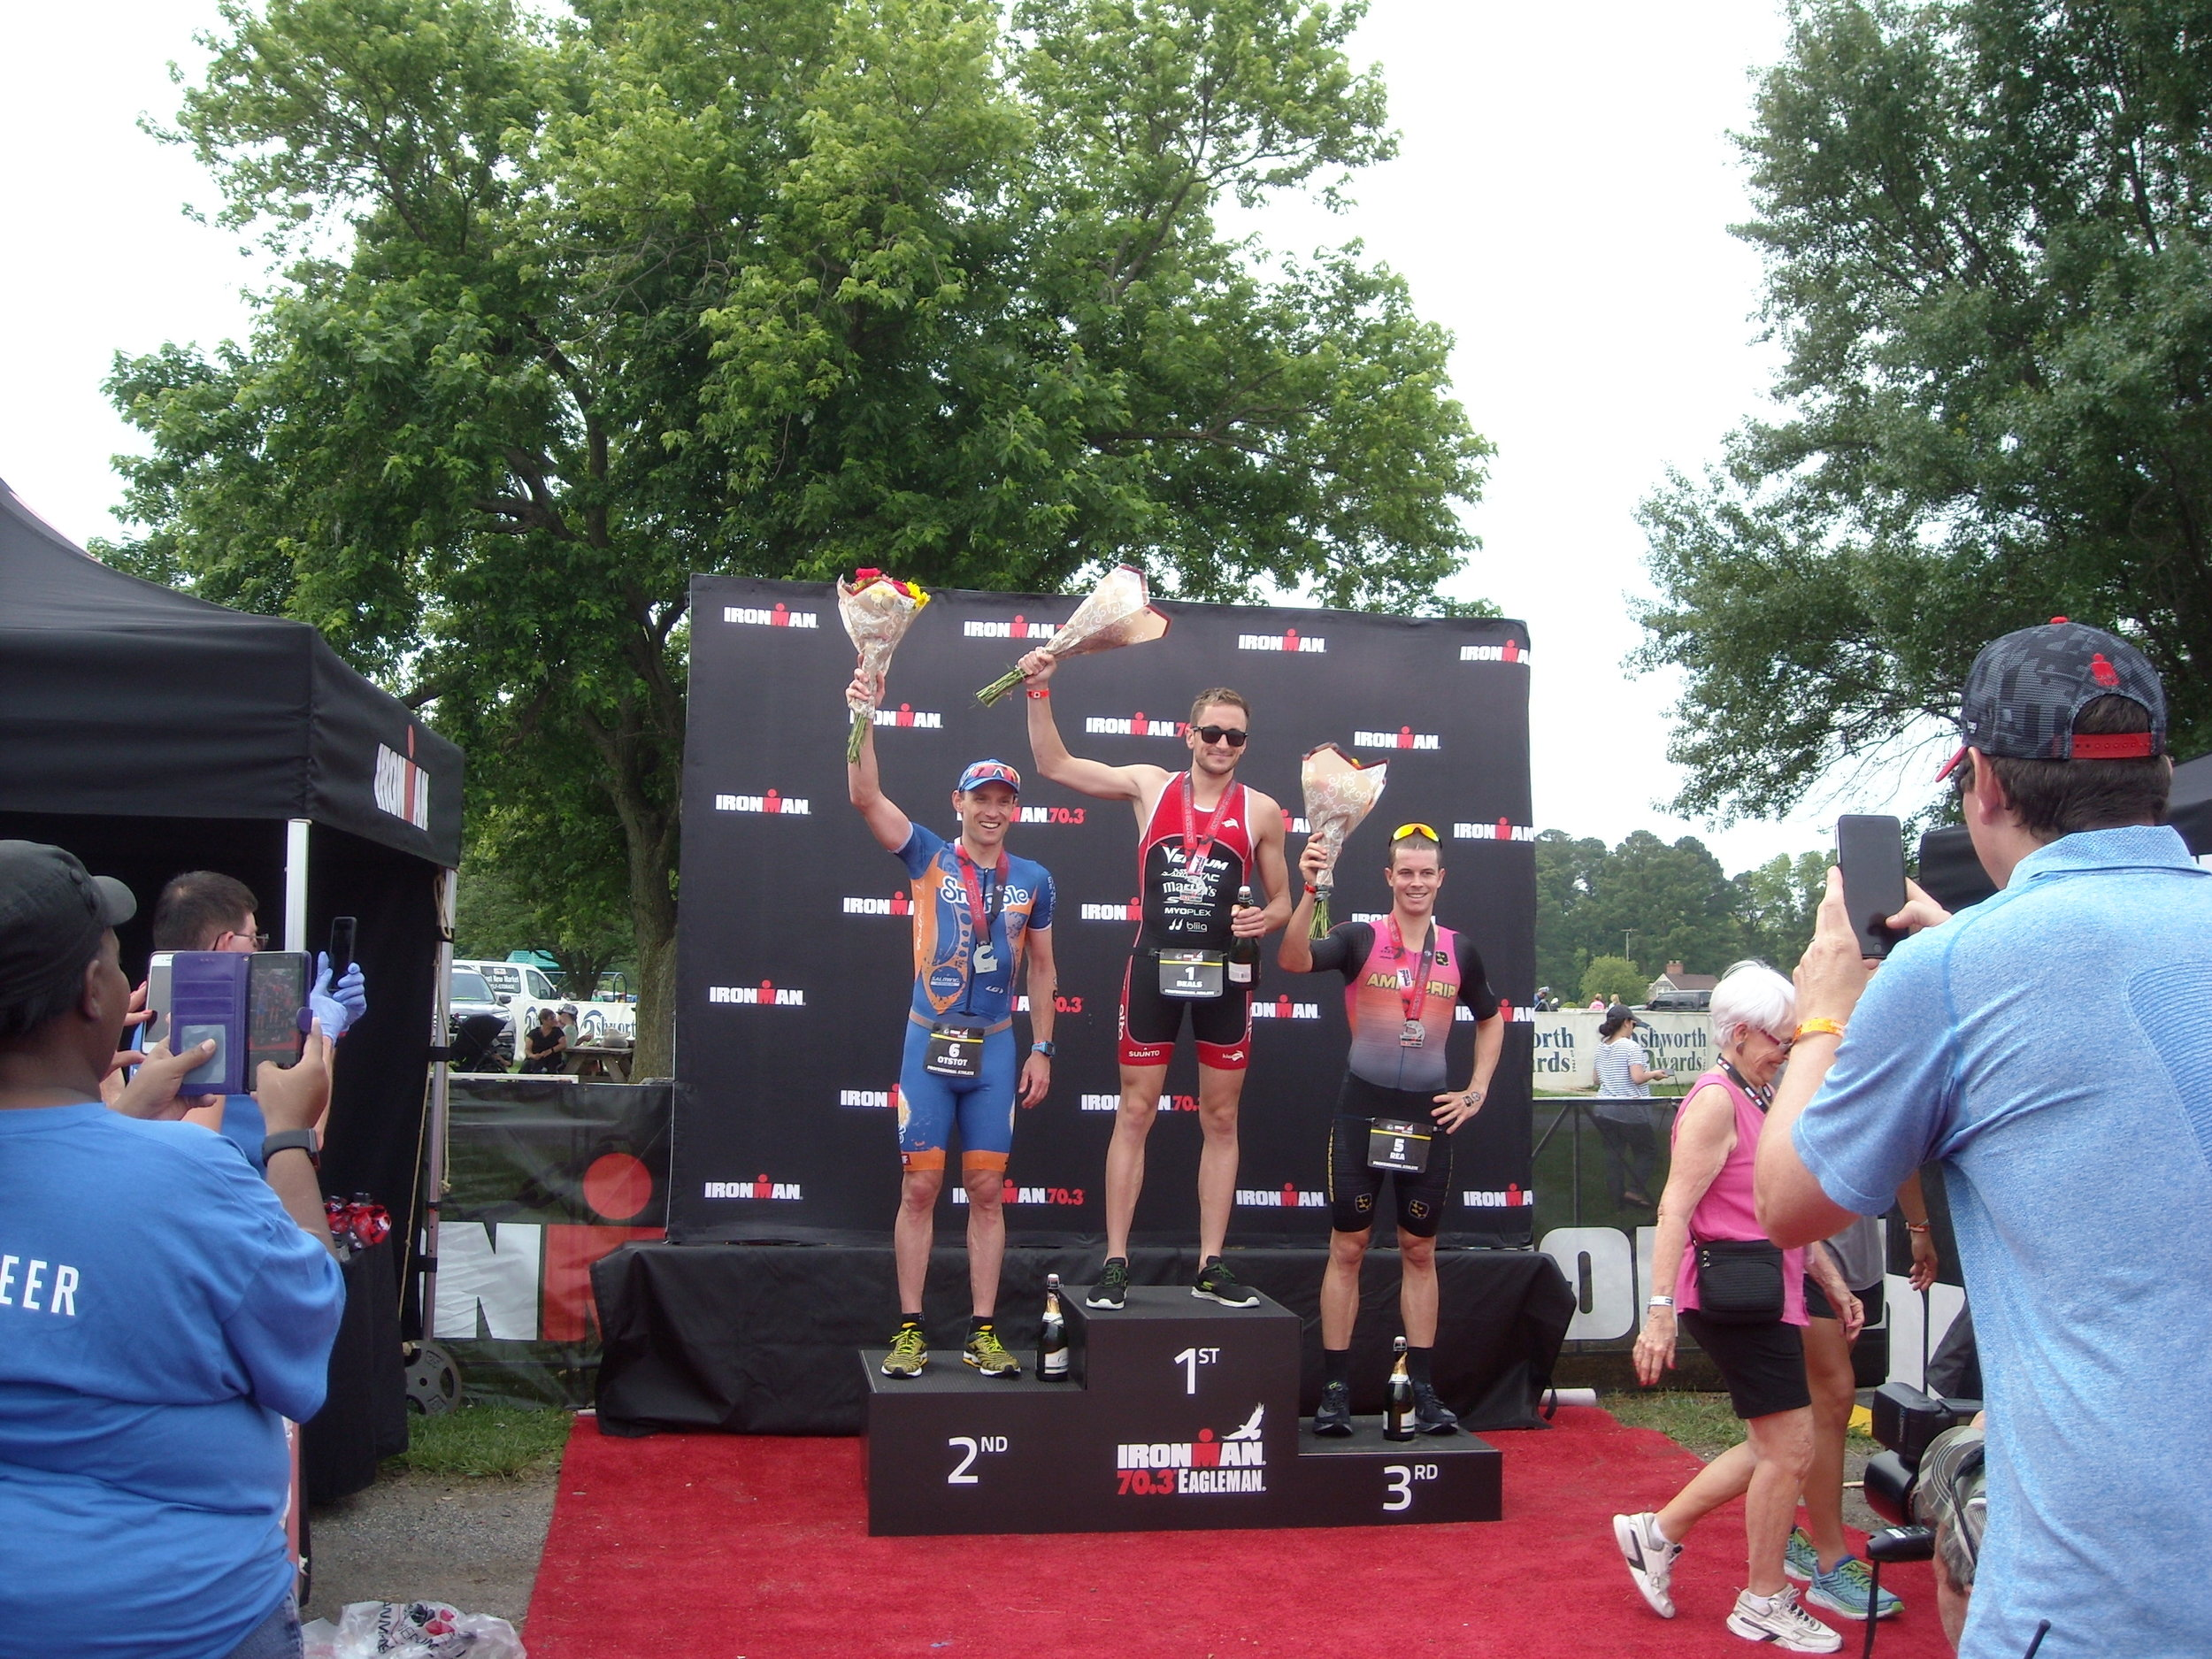 Coach_Terry_Wilson_Ironman_70.3_Eagleman_Adam_Otstot_2018_Podium.JPG